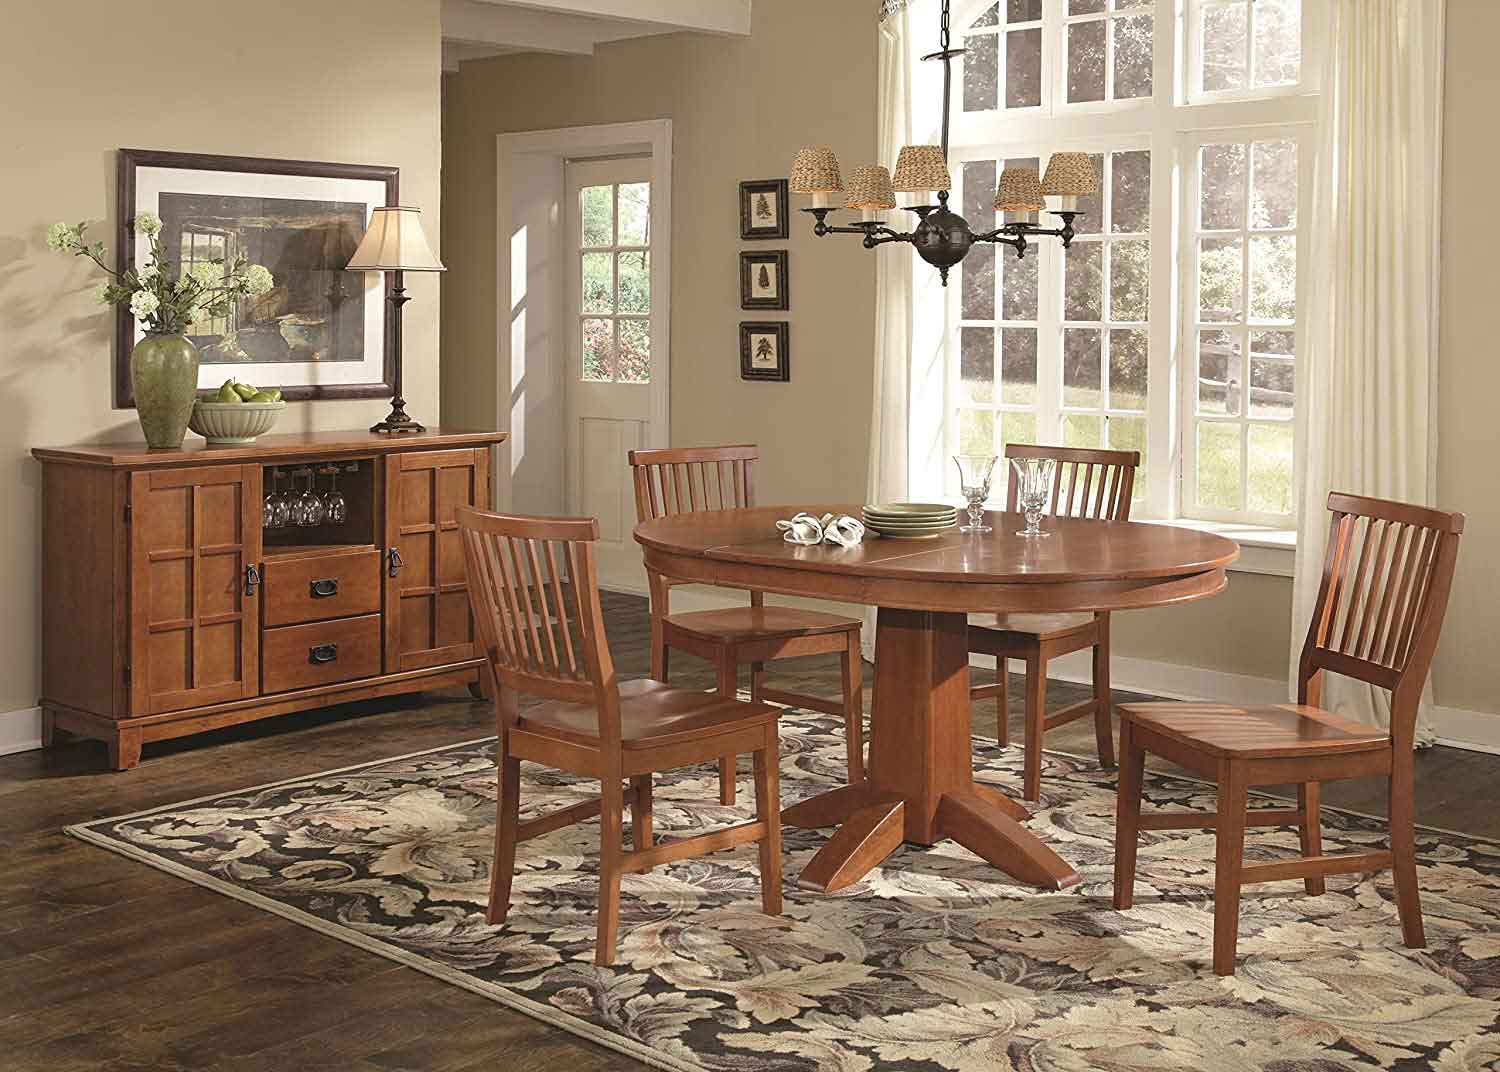 Home style 5180-69 1